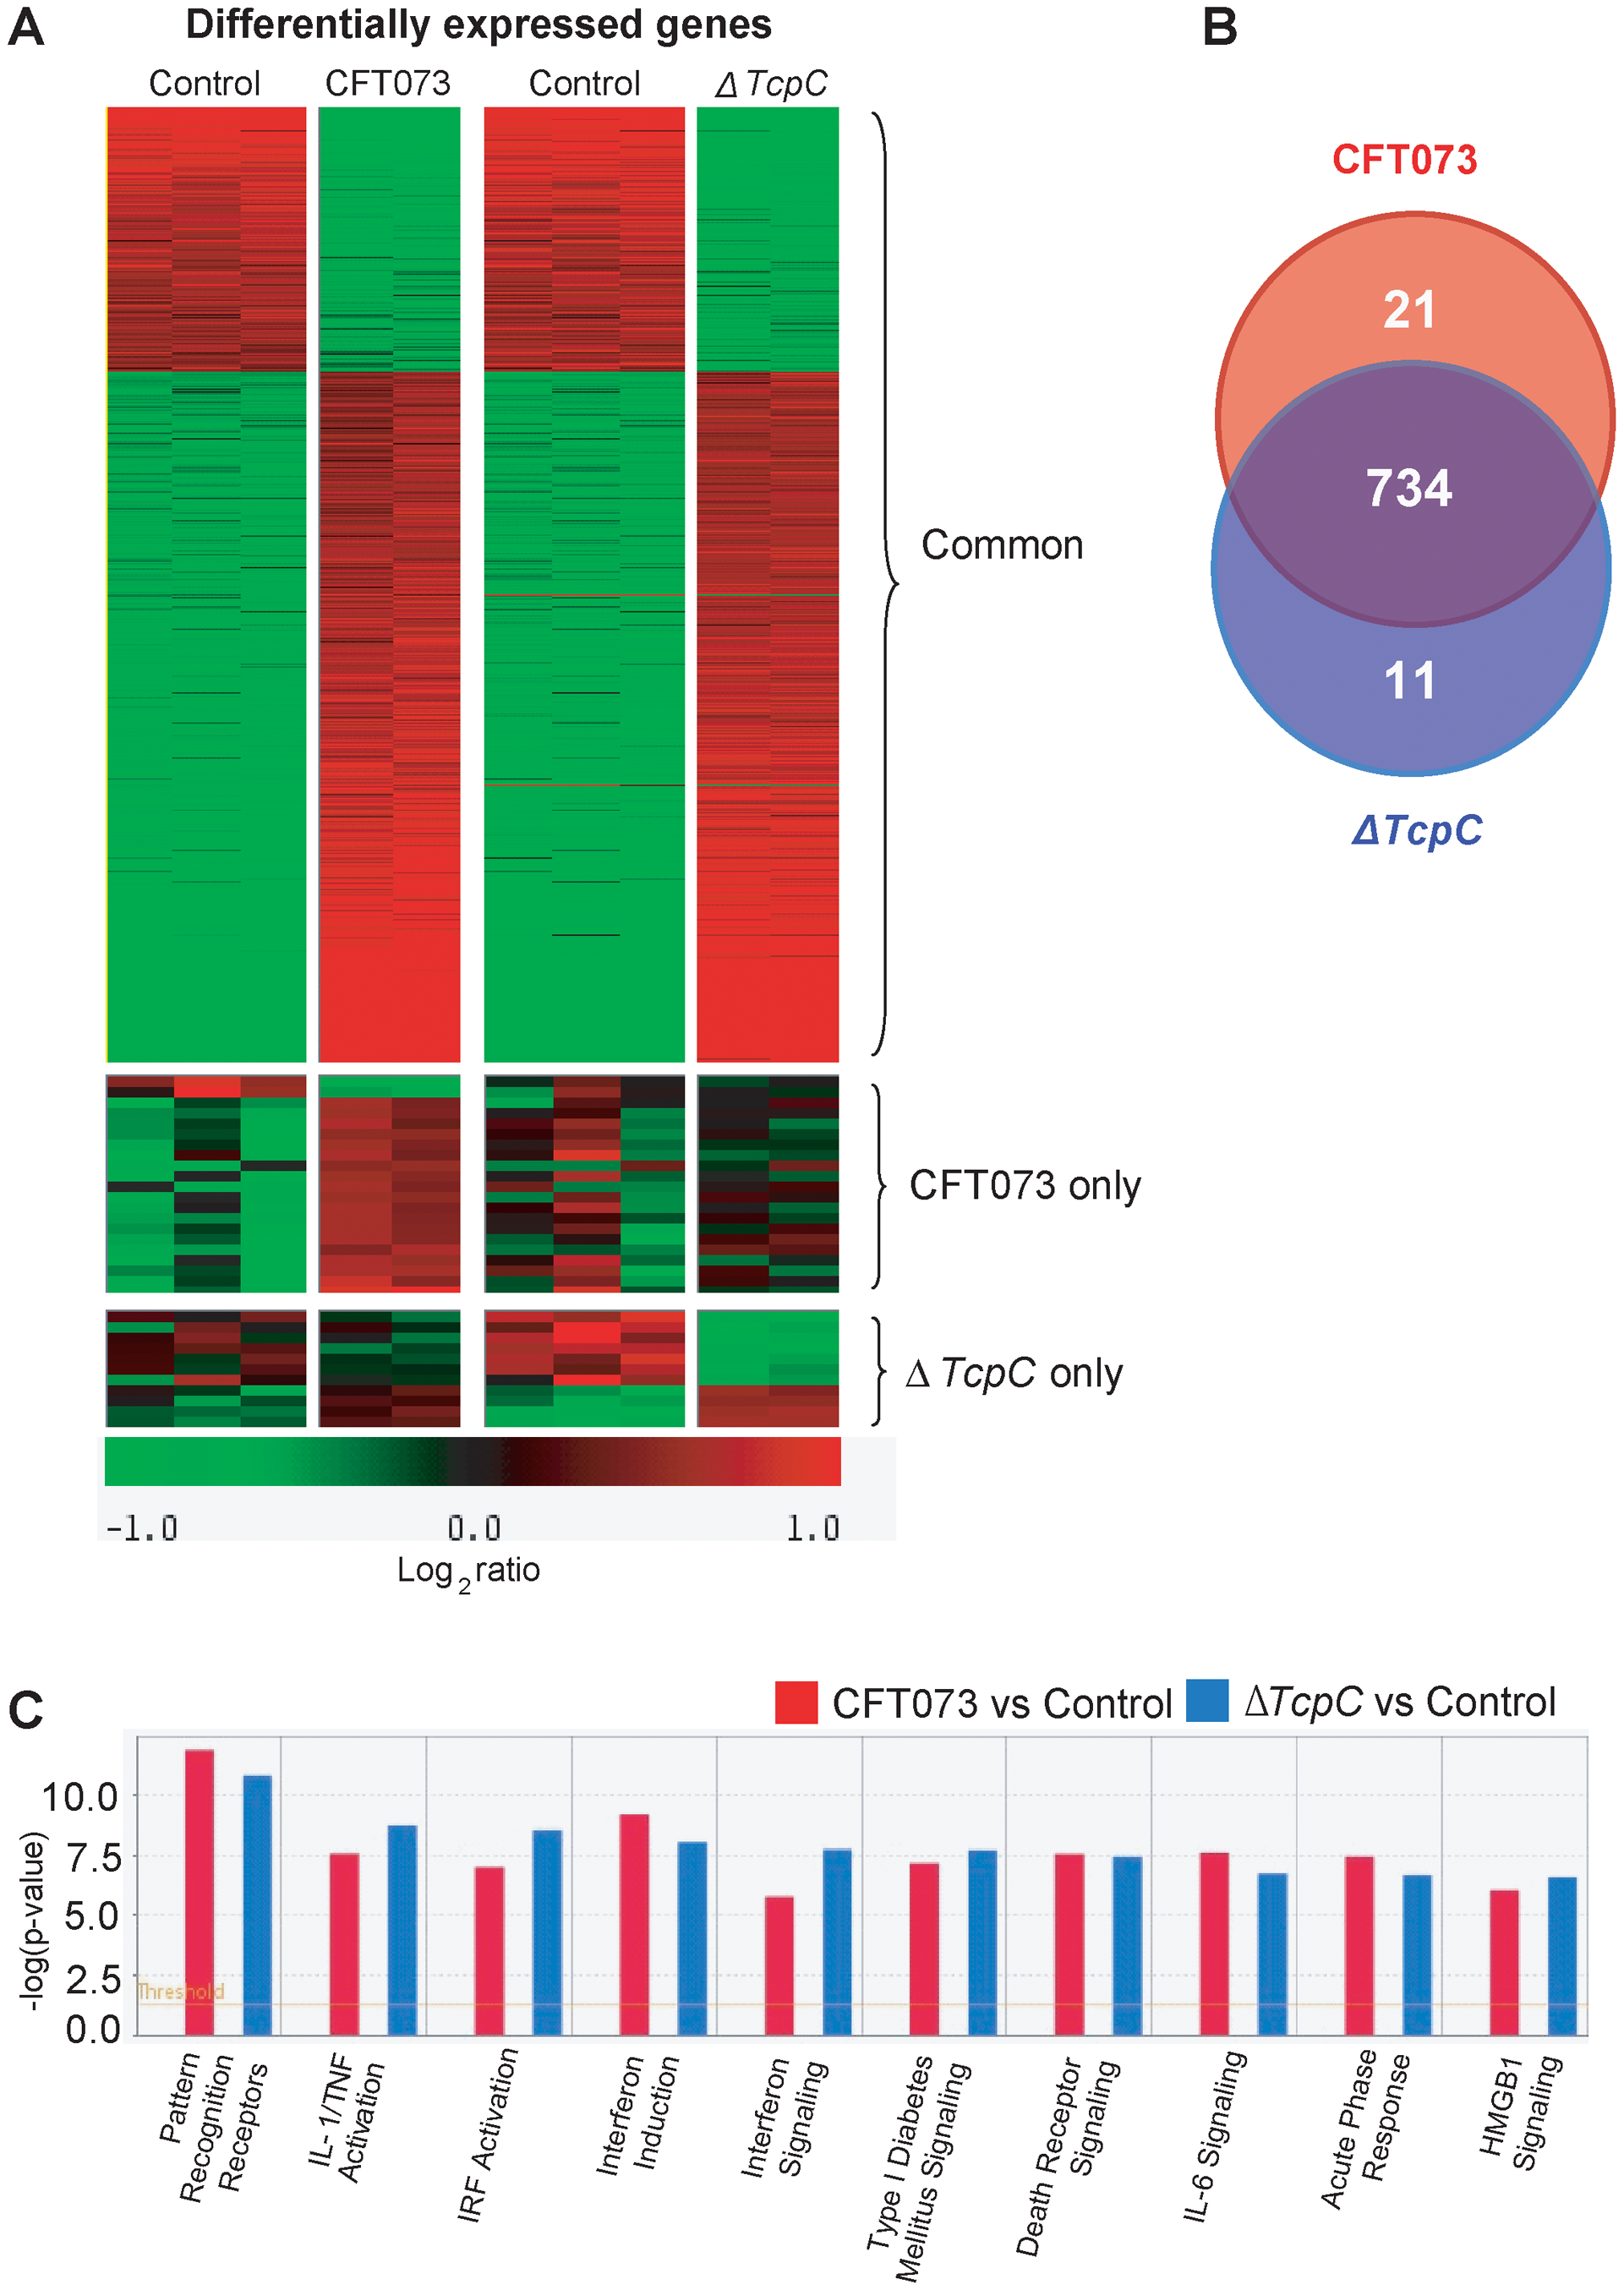 Uroepithelial gene expression in response to <i>in vitro</i> infection with CFT073 or <i>ΔTcpC</i>.